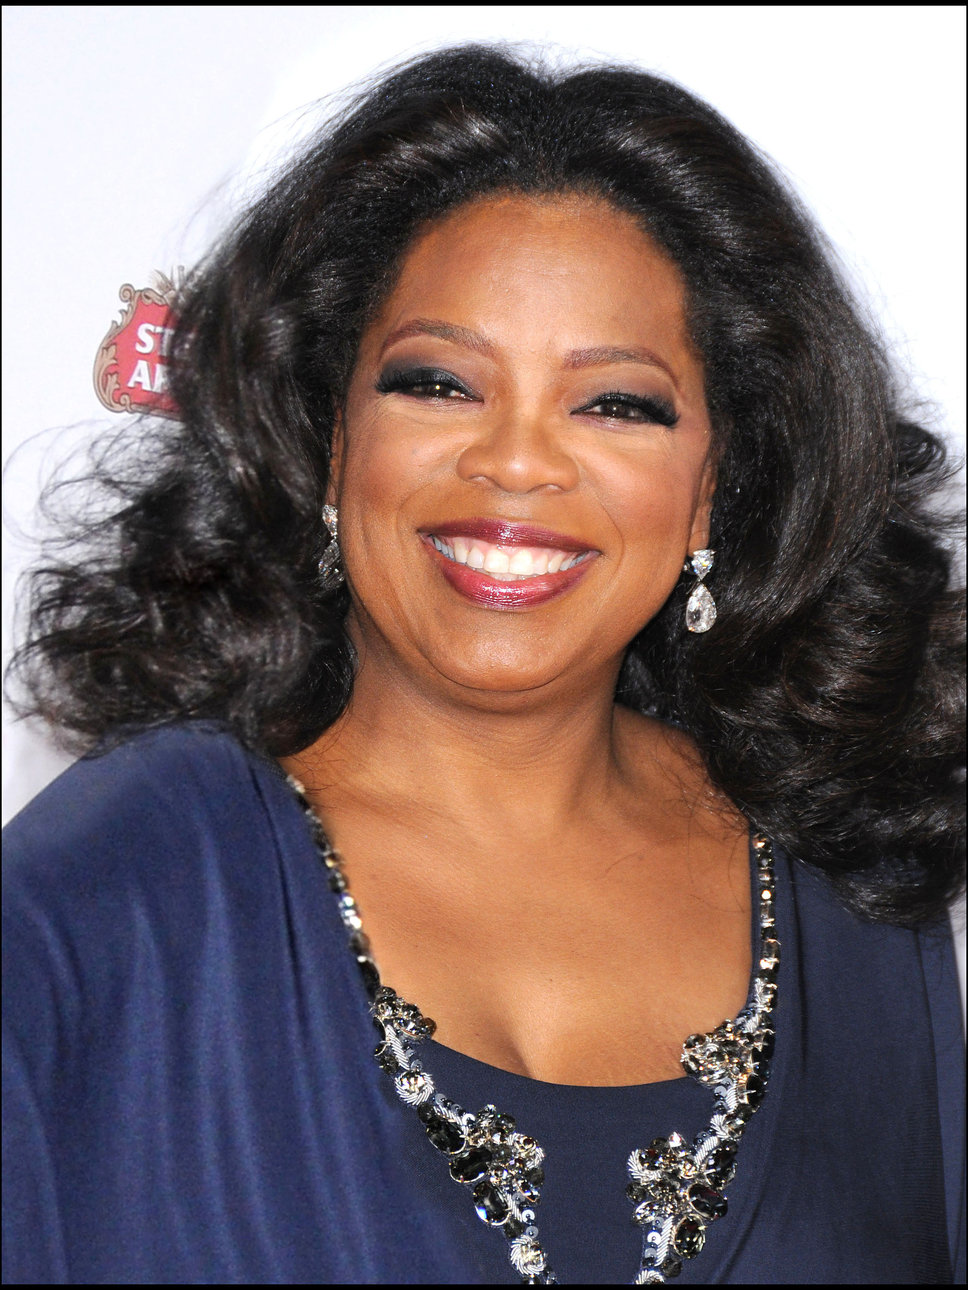 Oprah-Winfrey-Wallpapers-6.jpg